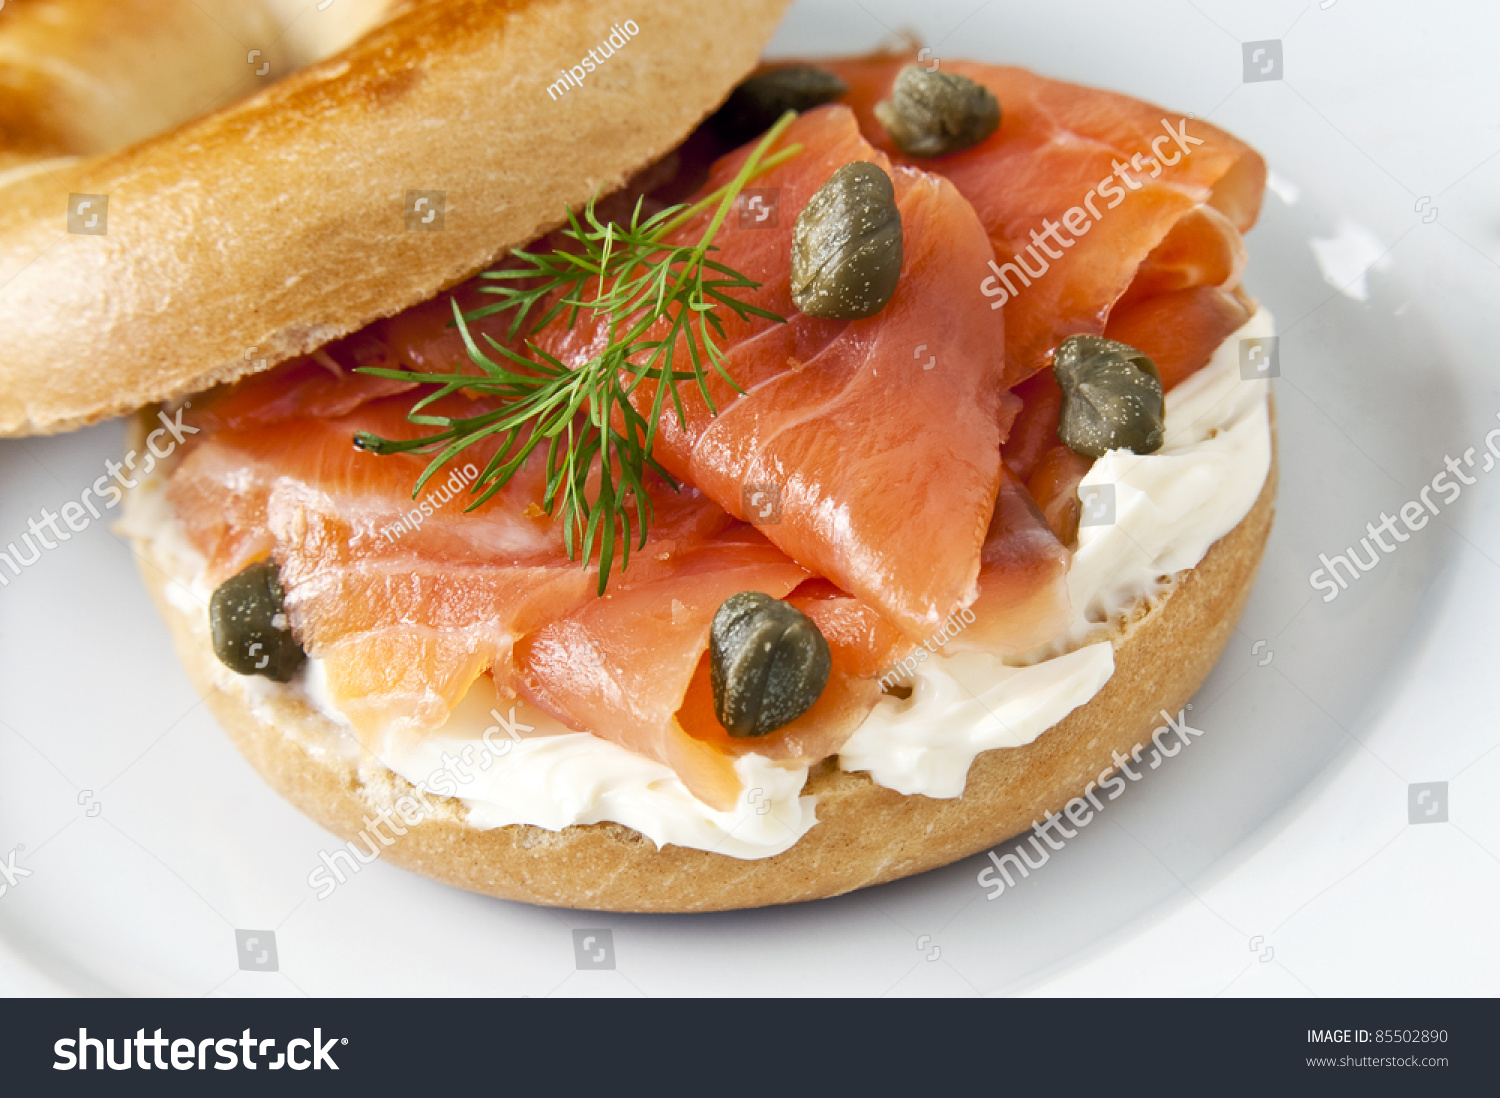 Cream Cheese And Smoked Salmon Bagel Stock Photo 85502890 ...